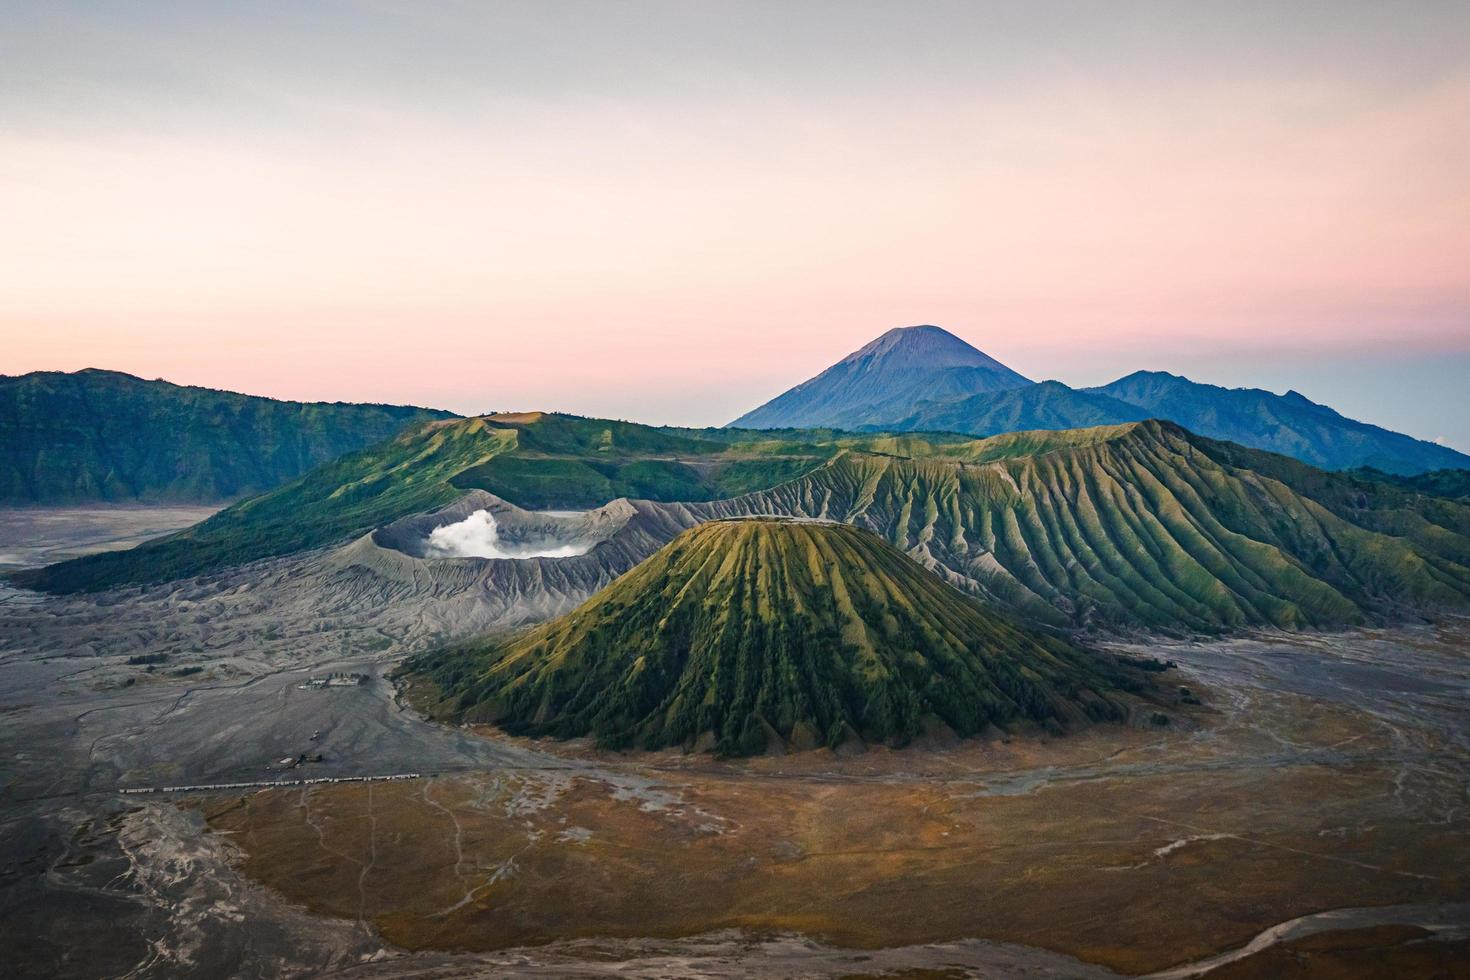 View of volcano at sunset photo